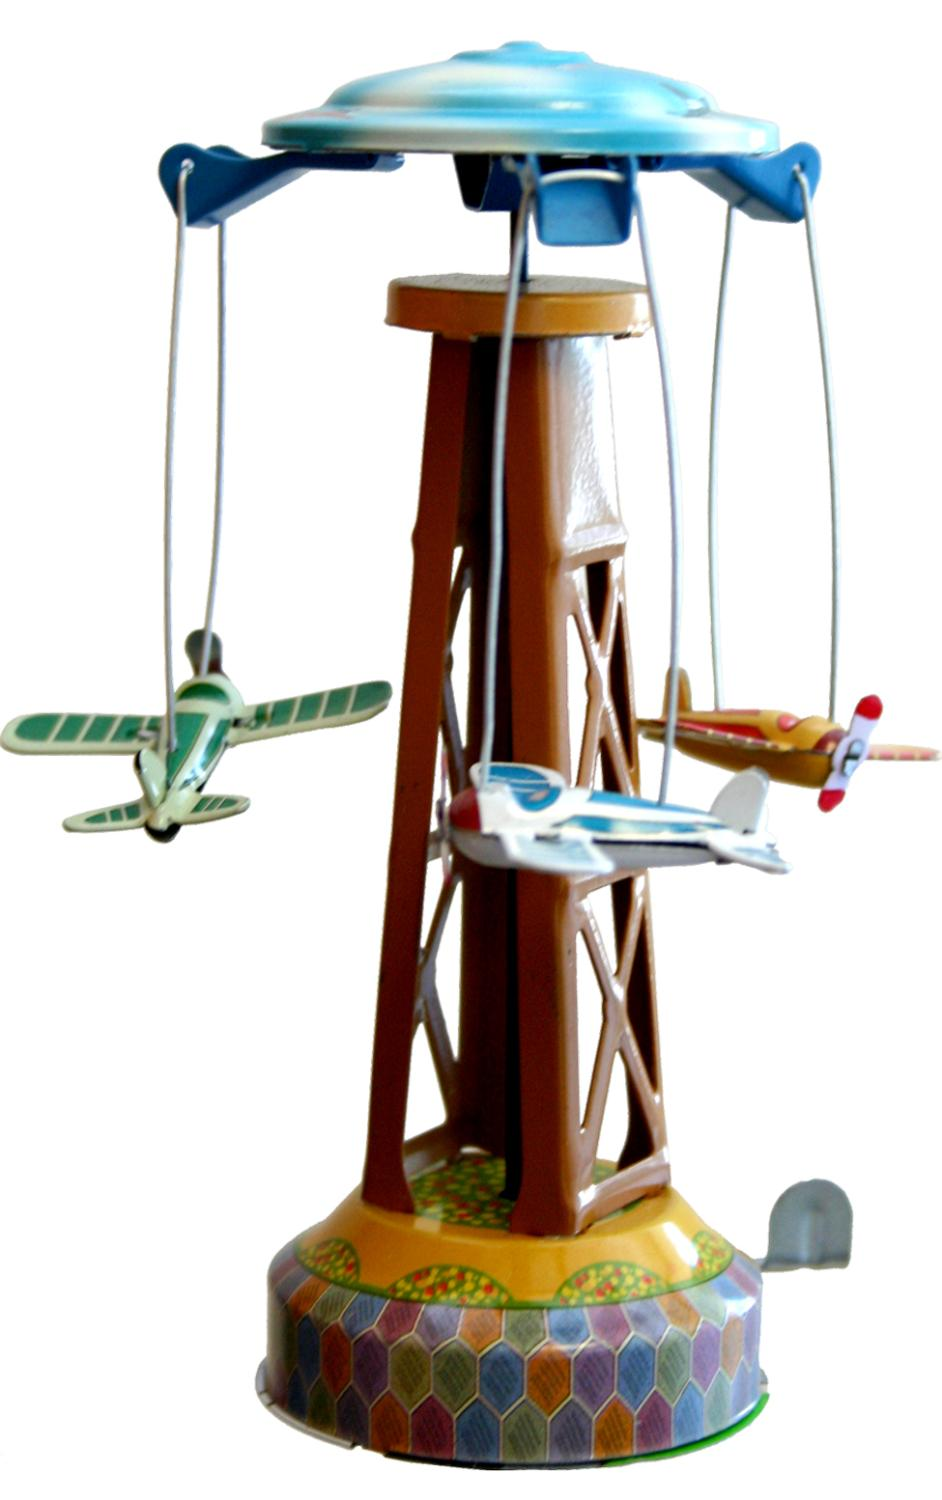 MM262 - Collectible Tin Toy - Merry-Go-Round - 5.5